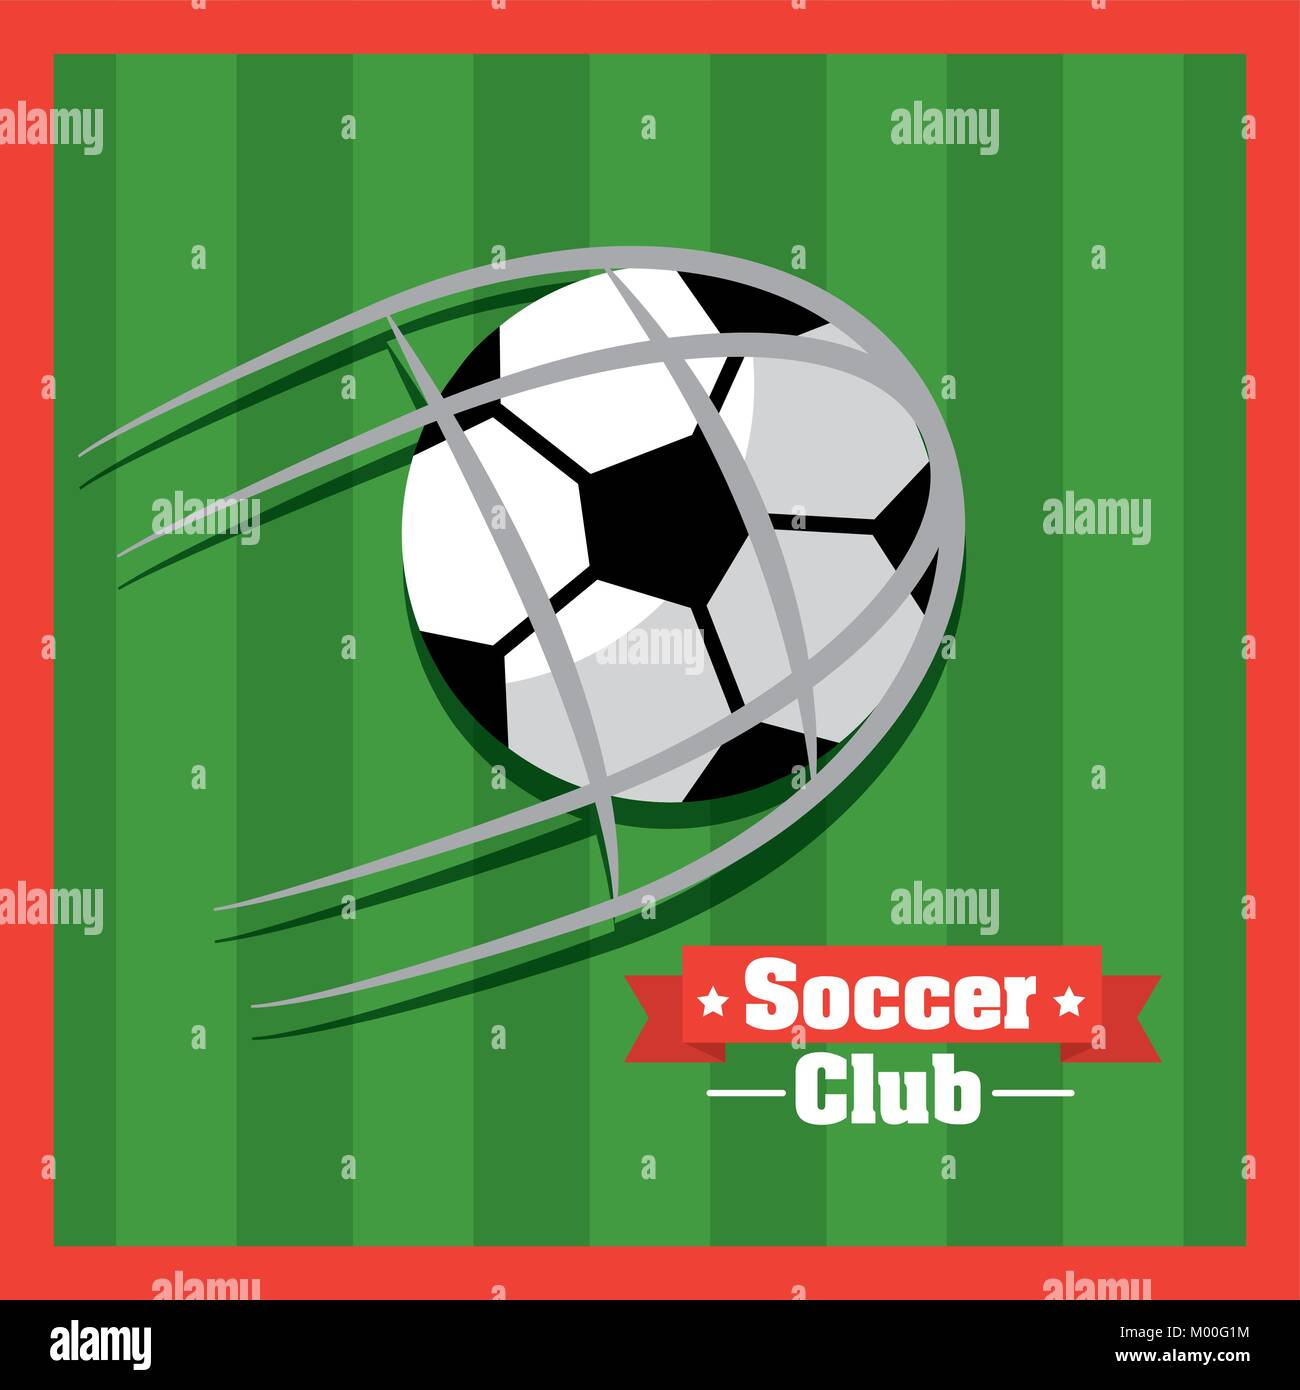 soccer club ball goal red green background - Stock Vector